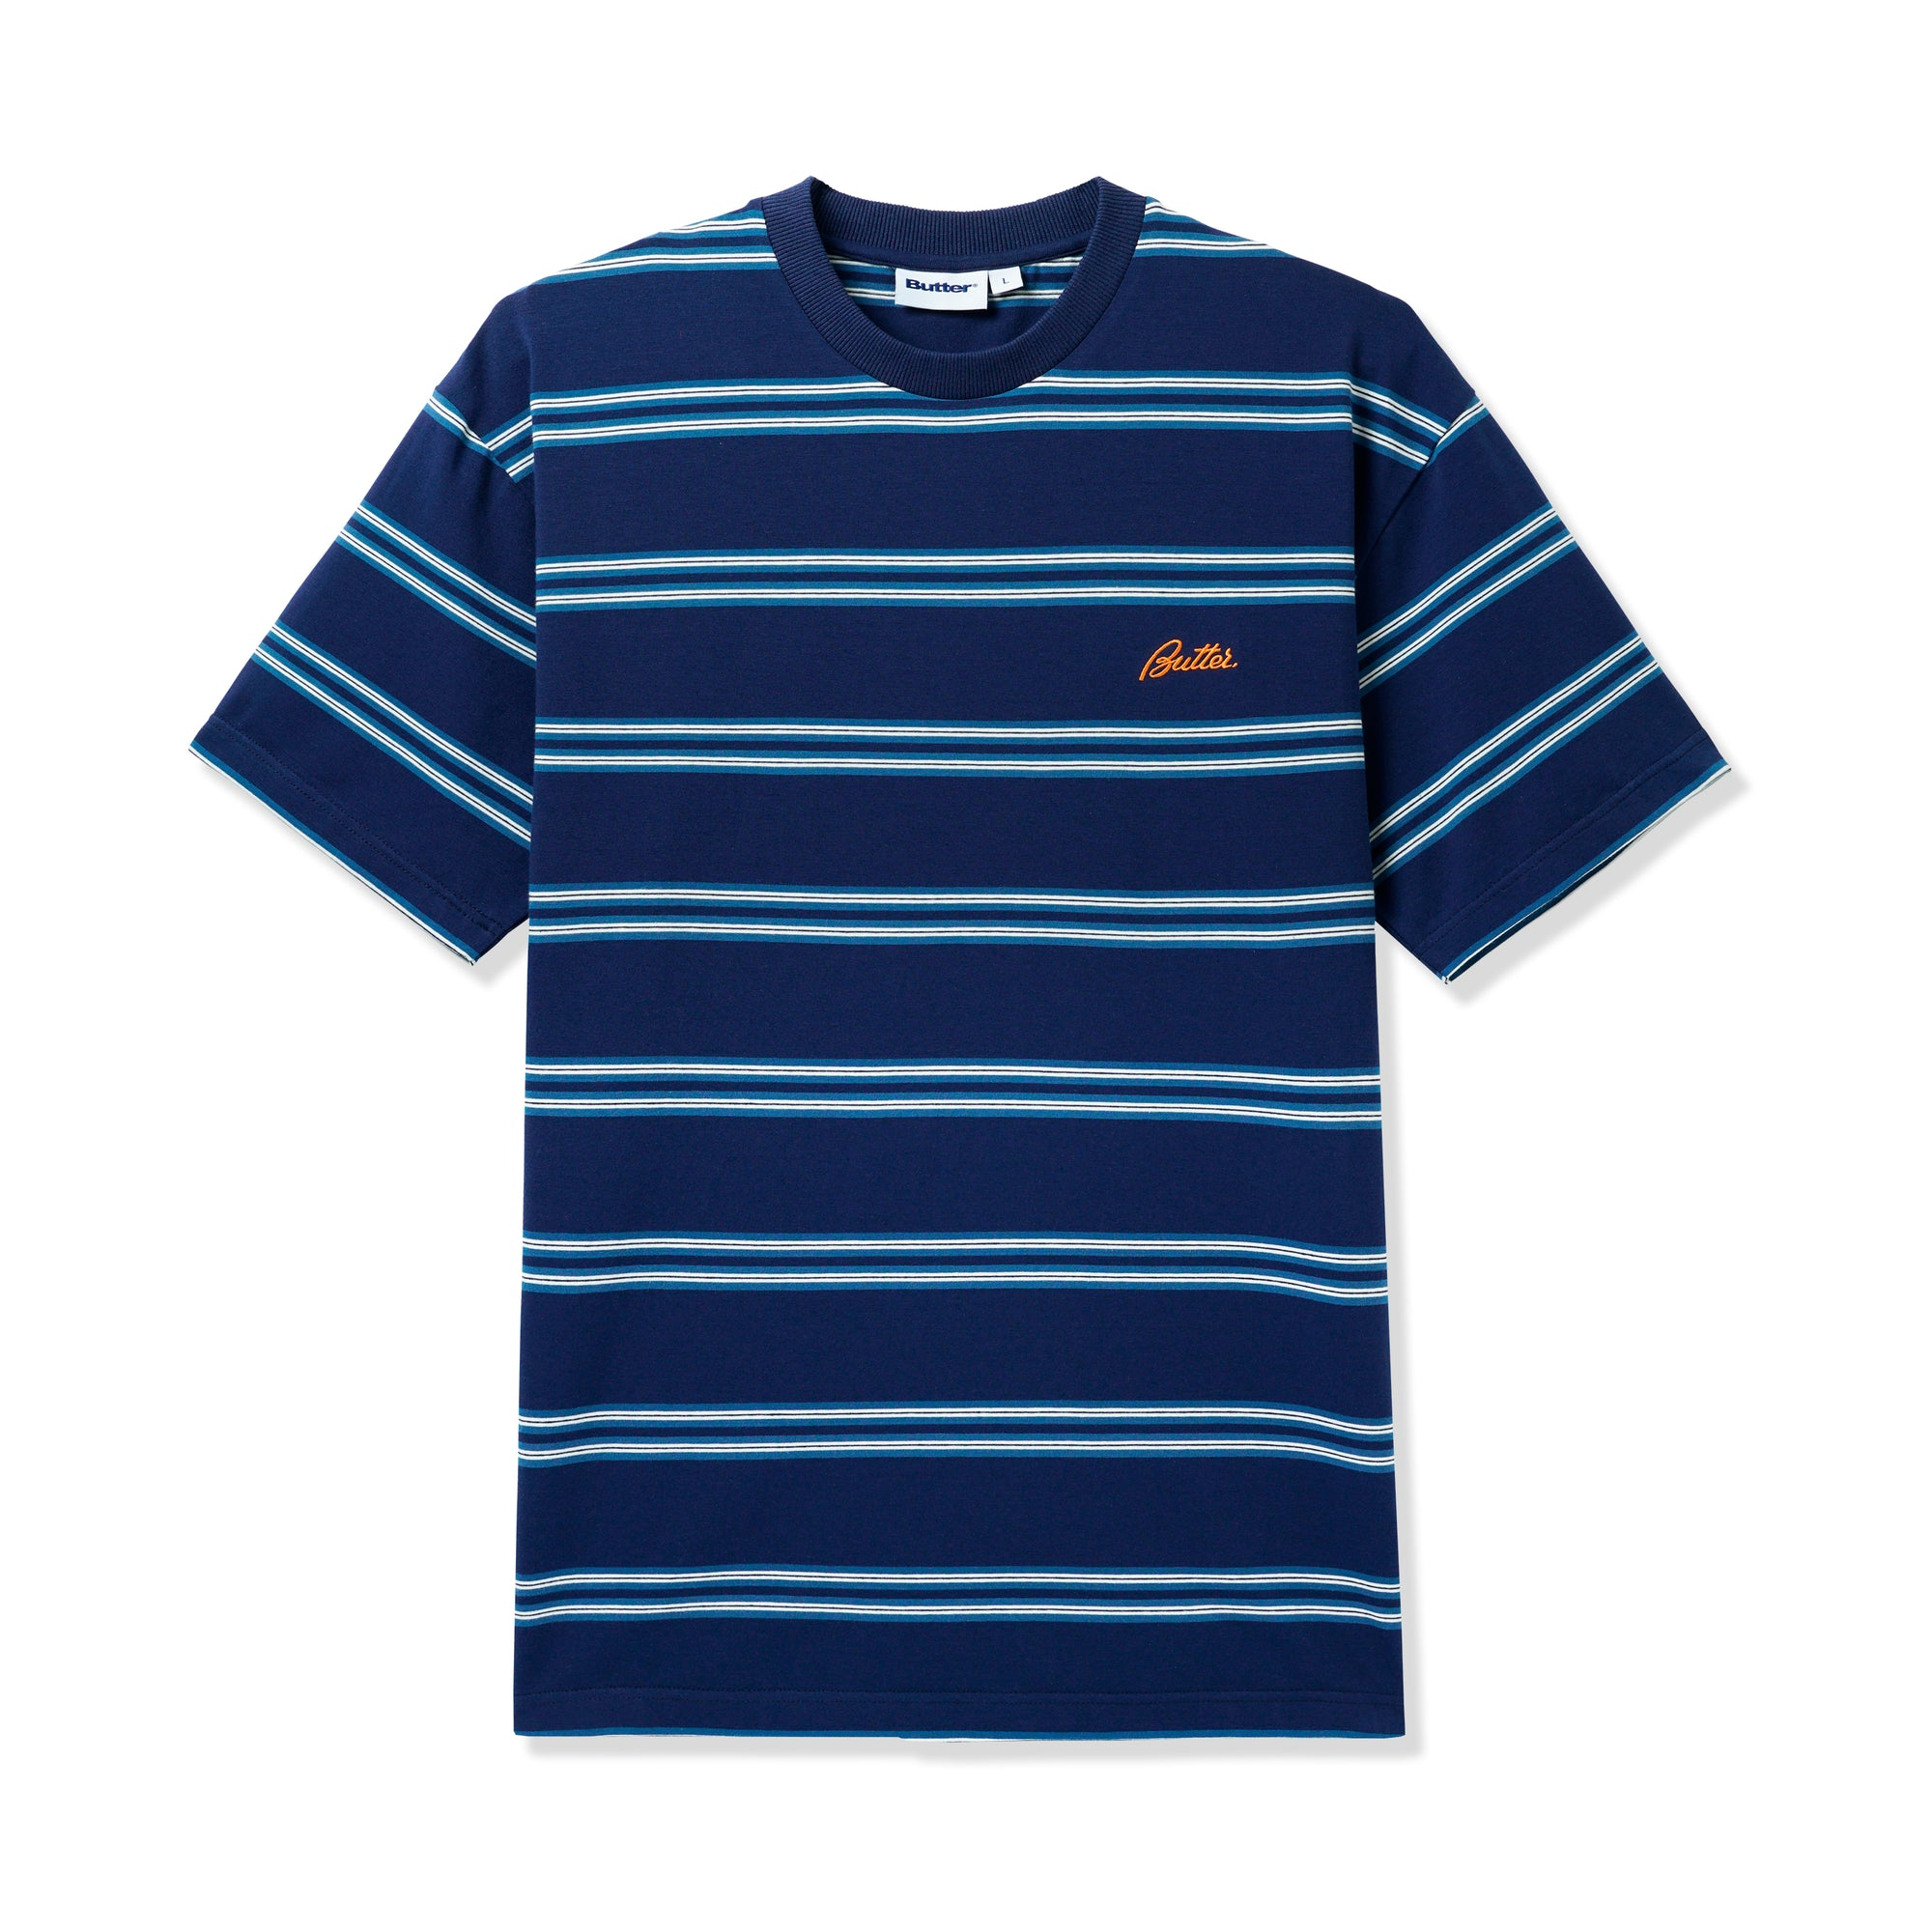 Butter Goods Market Stripe Tee Product Photo #1